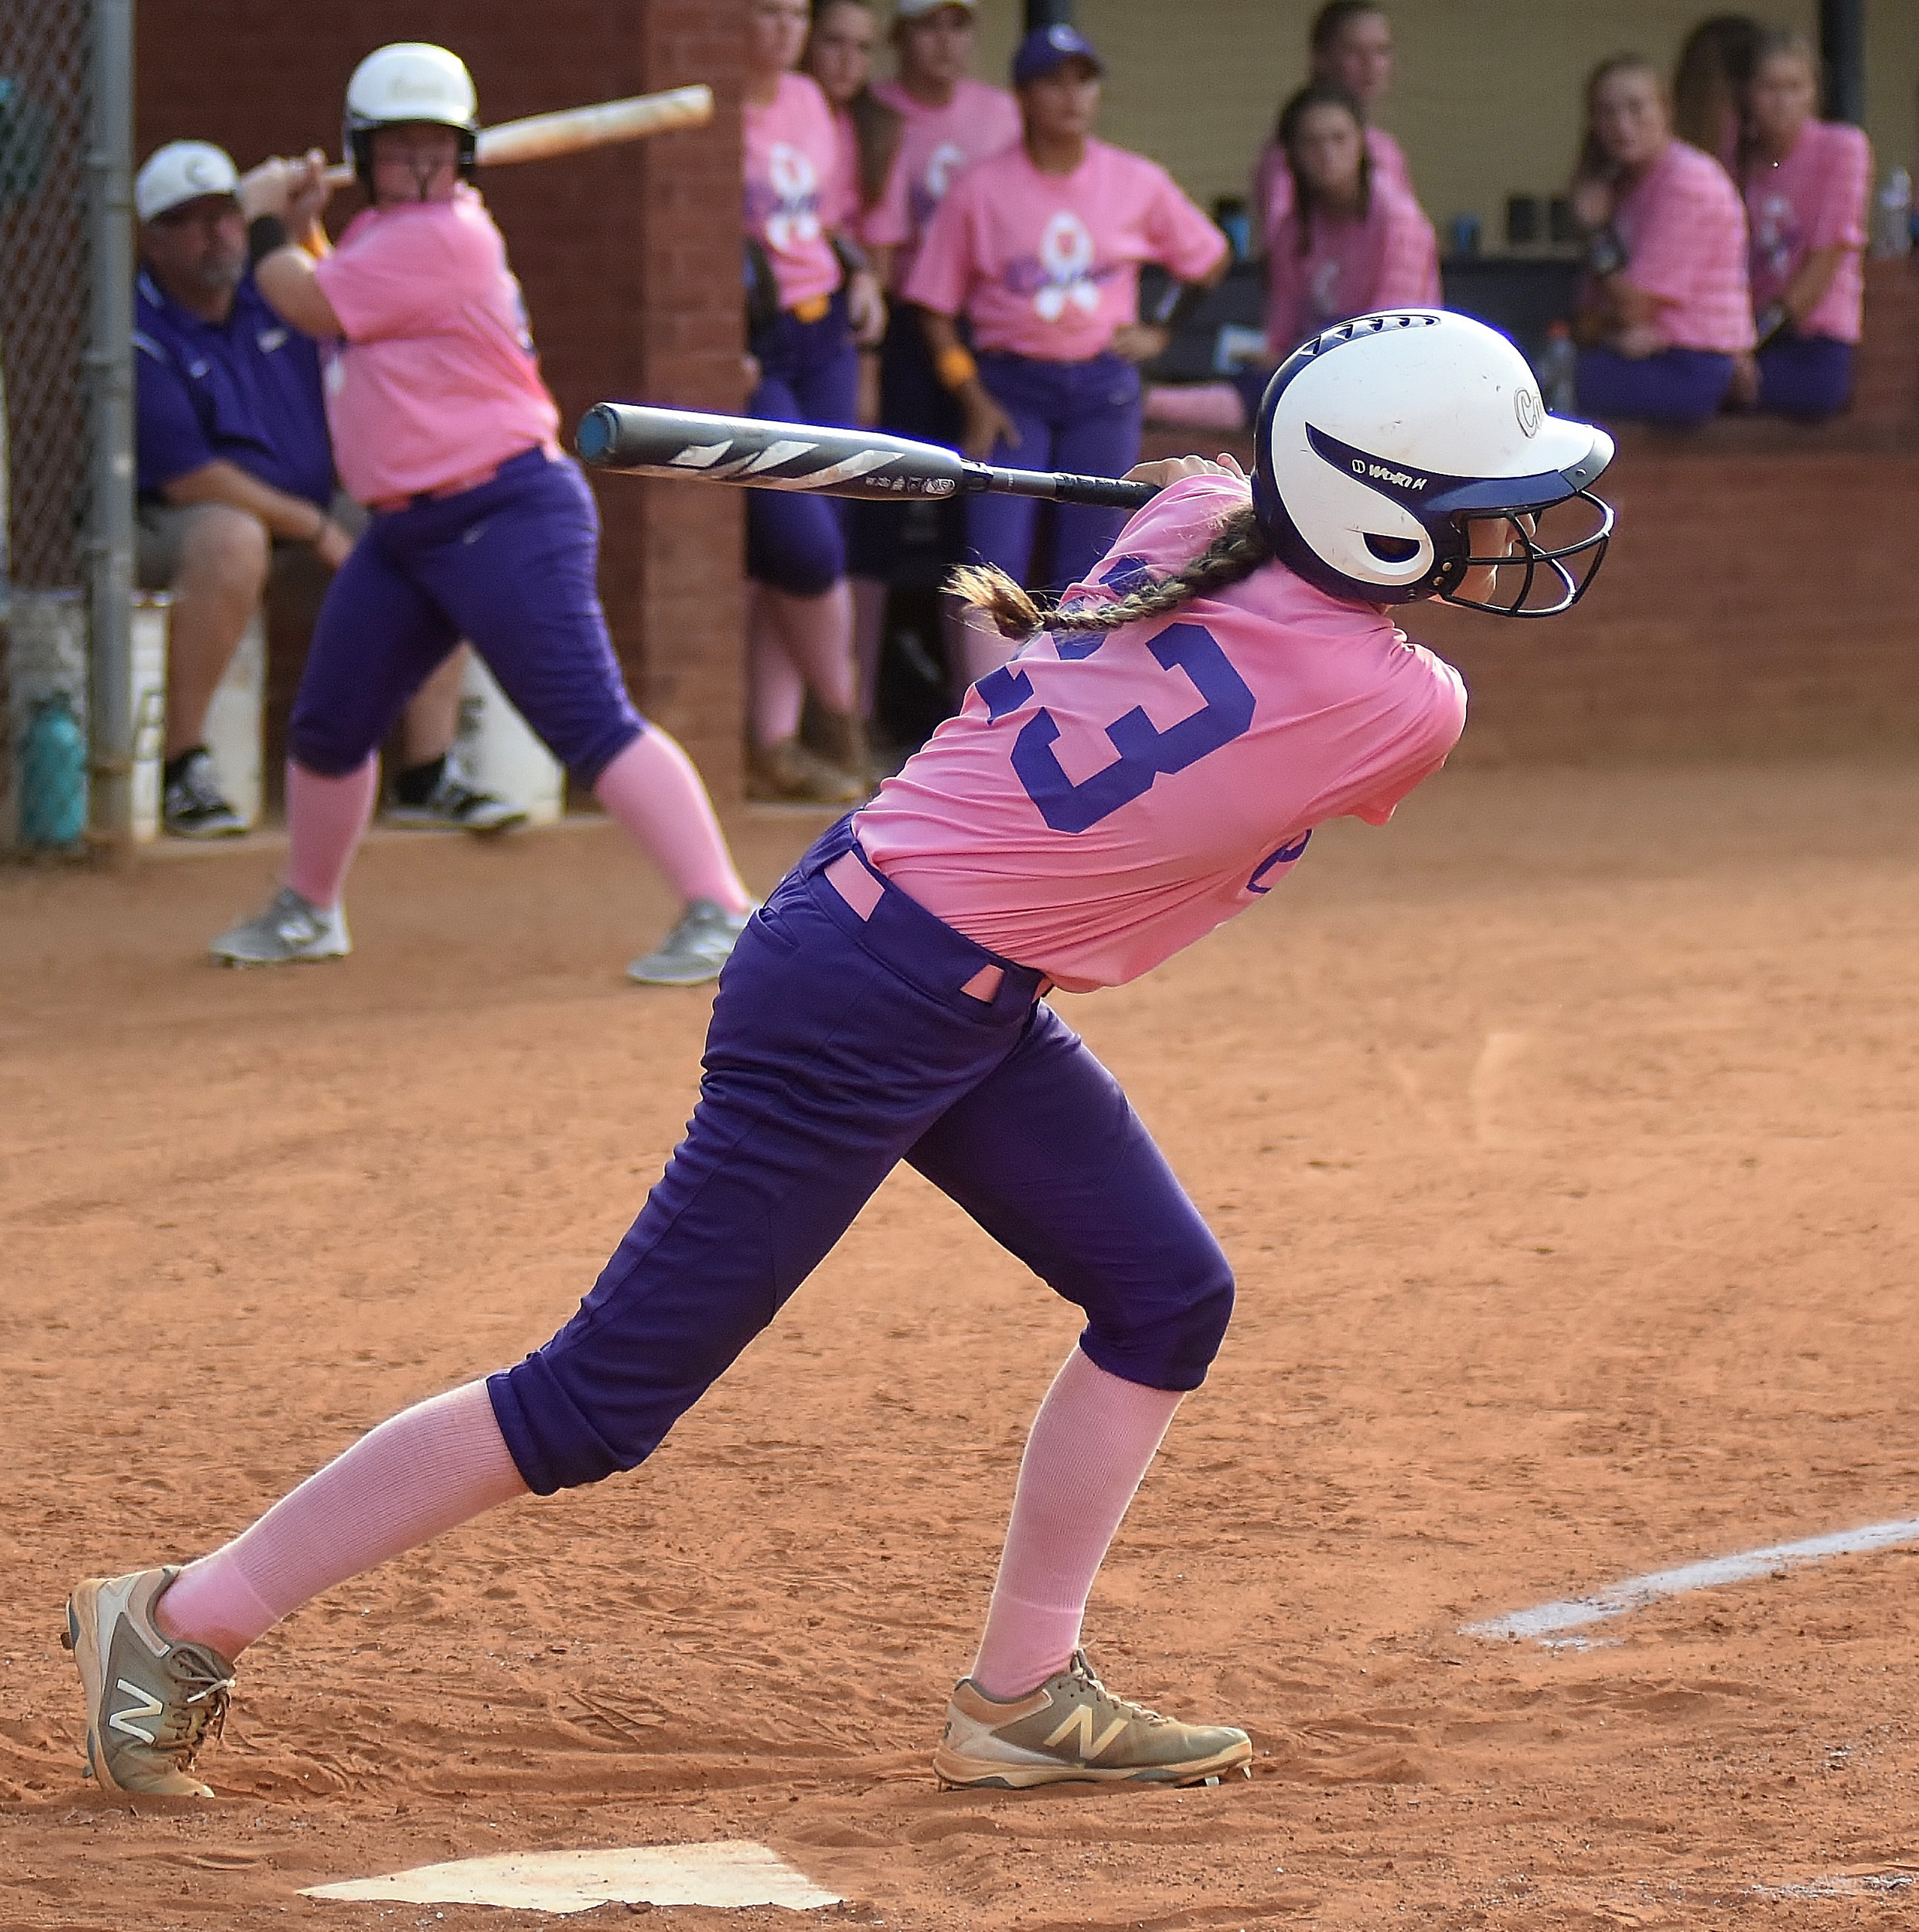 Cartersville catcher Lauren McElhaney follows through on a base hit to left field in the second inning of Thursday's 7-2 loss to Central-Carroll. McElhaney had two of the Canes' four hits, including an RBI double in the sixth inning.